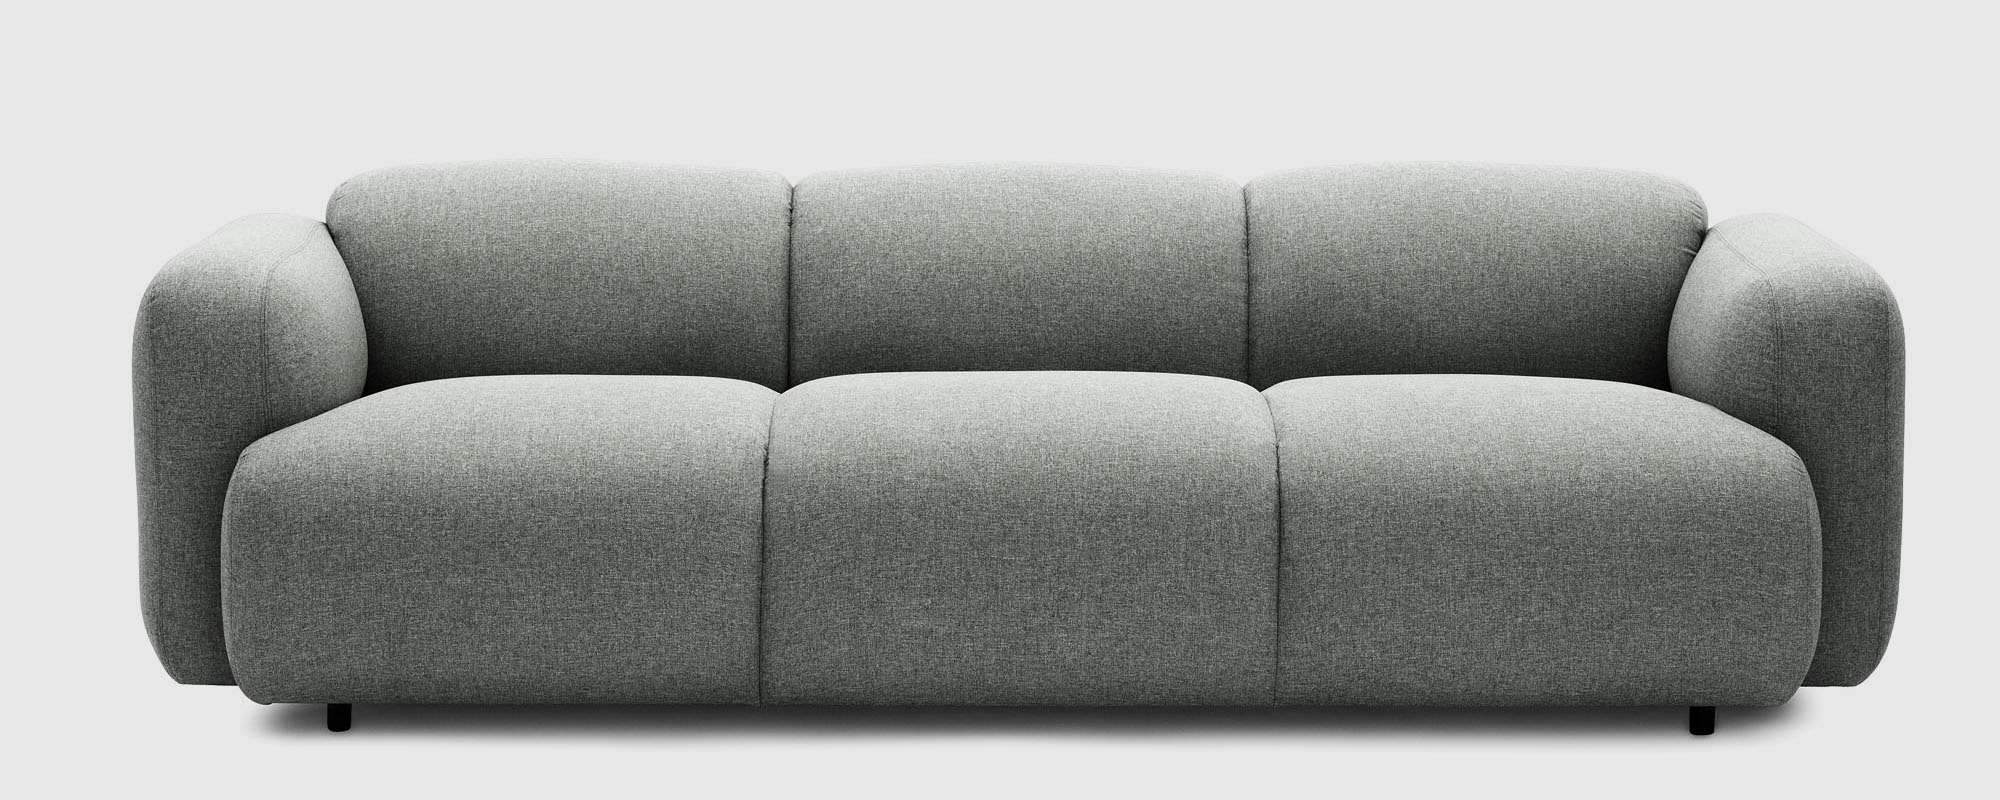 SwellSofa60003_2000x800-grey